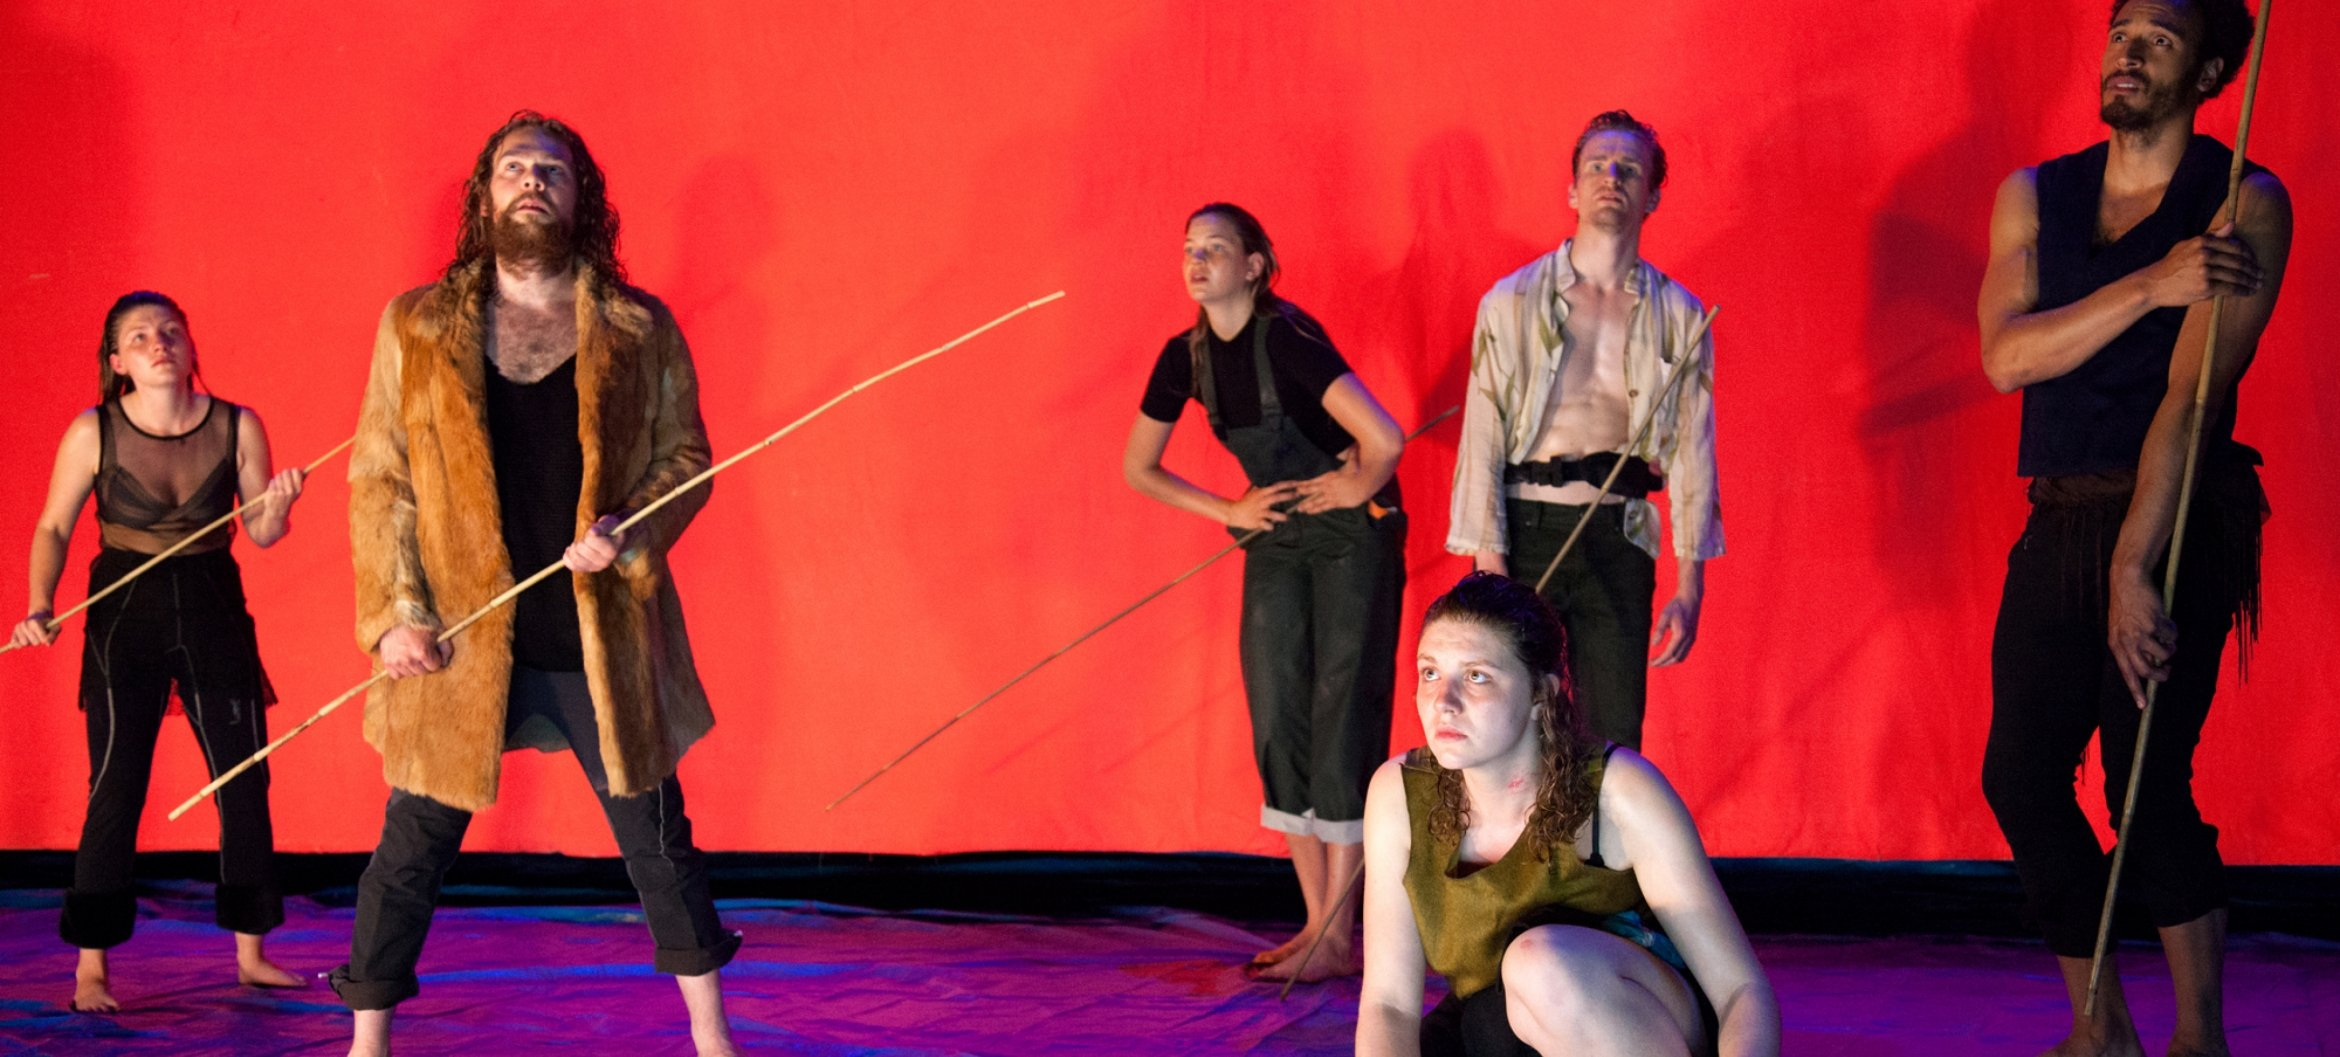 Anne Rietmeijer in Noah (at the bottom right)